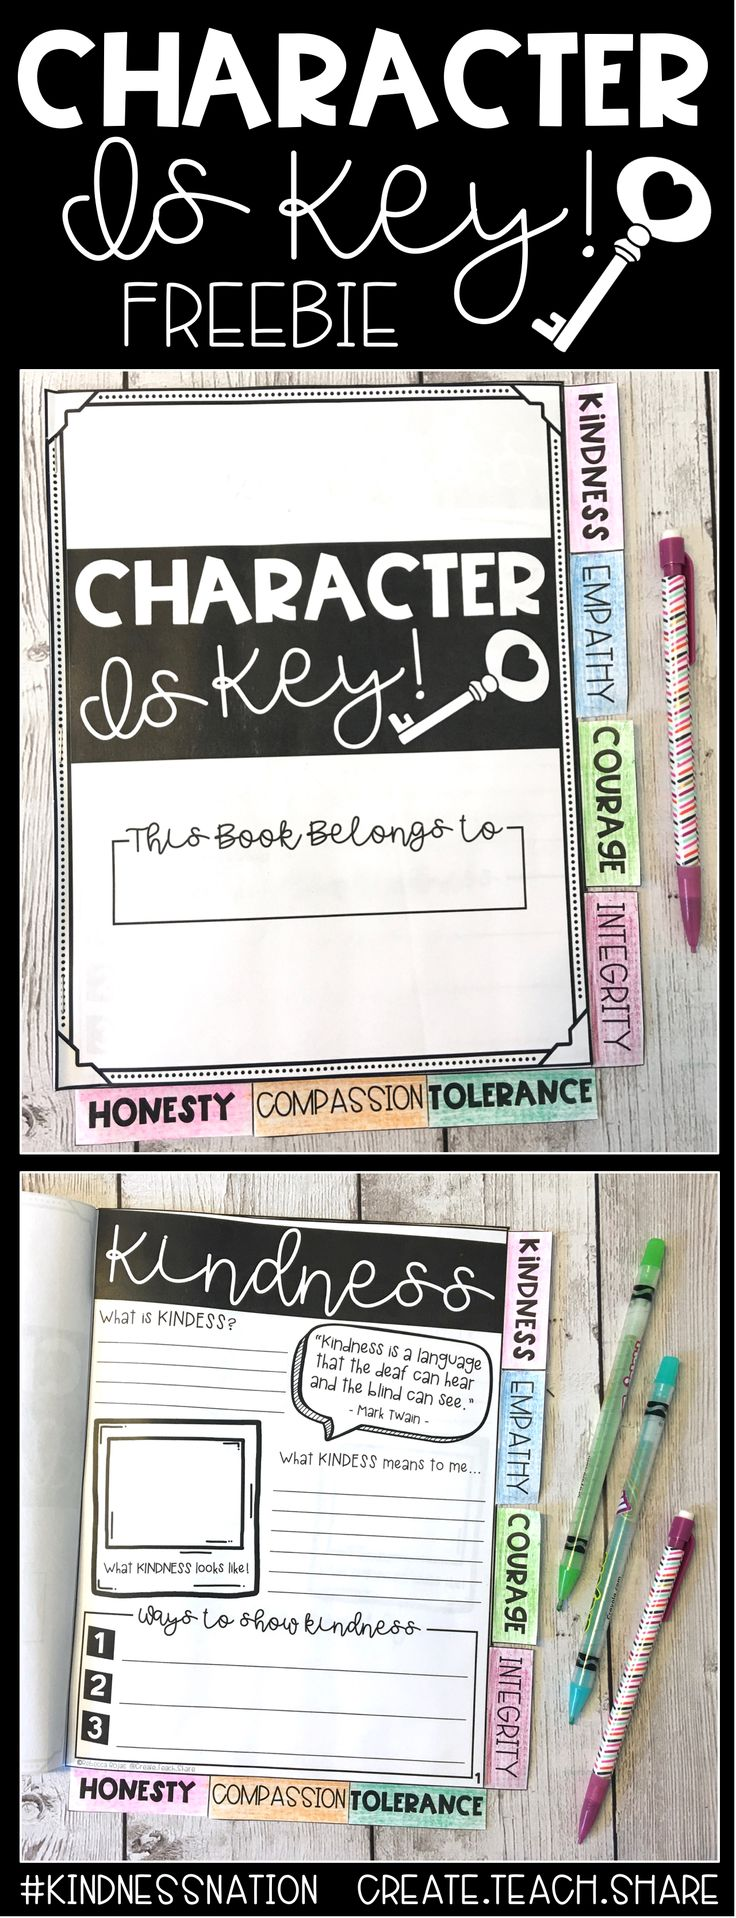 """This """"Character Is Key"""" Tab Book was designed to teach students about different character traits related to kindness and tolerance. It covers 7 character traits, and allows students to explore these traits and reflect on what these traits mean to them, and how they can show these positive traits throughout their lives. Perfect for character education, and teaching empathy, tolerance, kindness, courage, integrity, honesty, and compassion."""